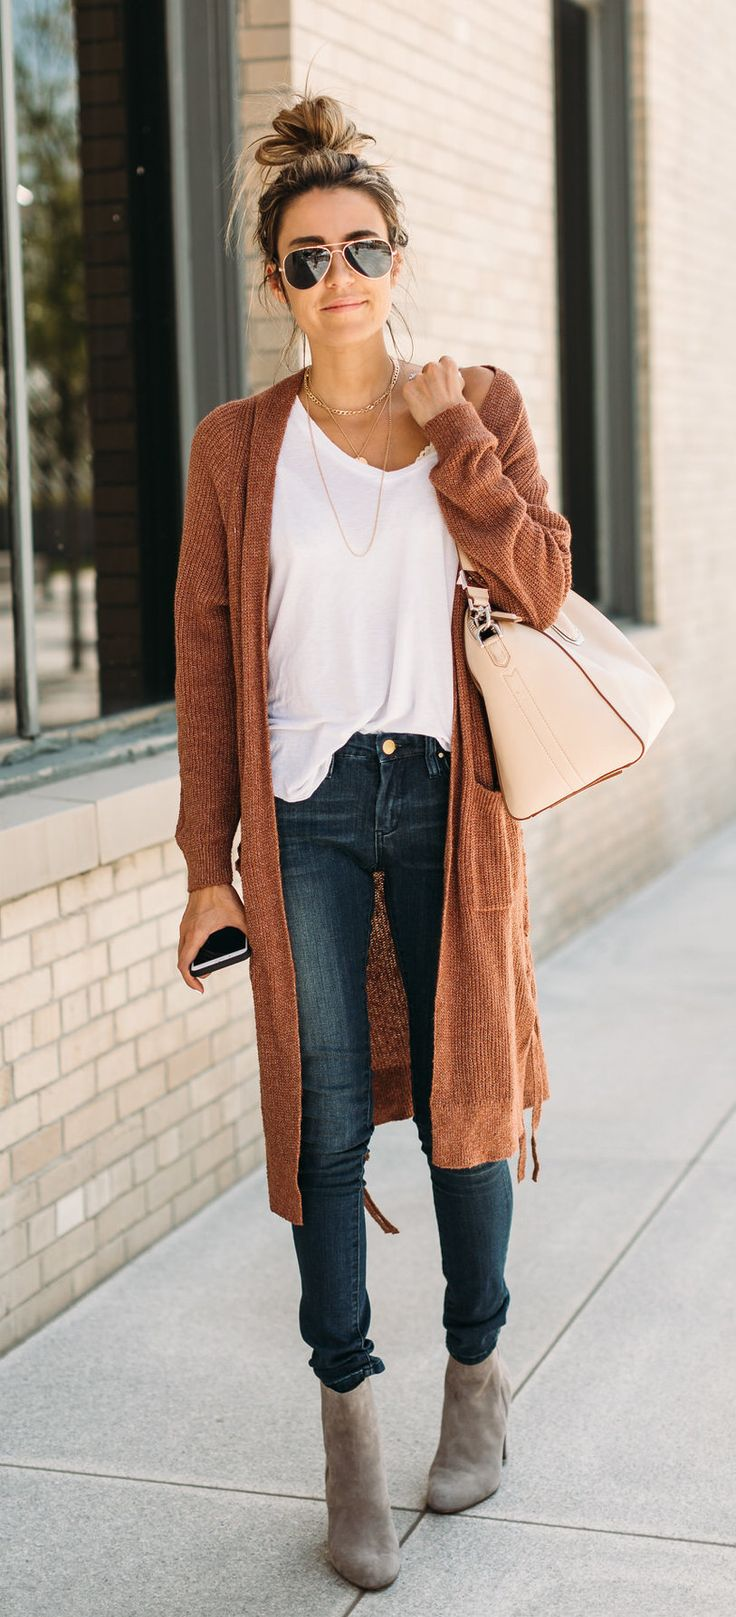 Fall outfit + chestnut brown long cardigan + jeans, booties and a classic white tee